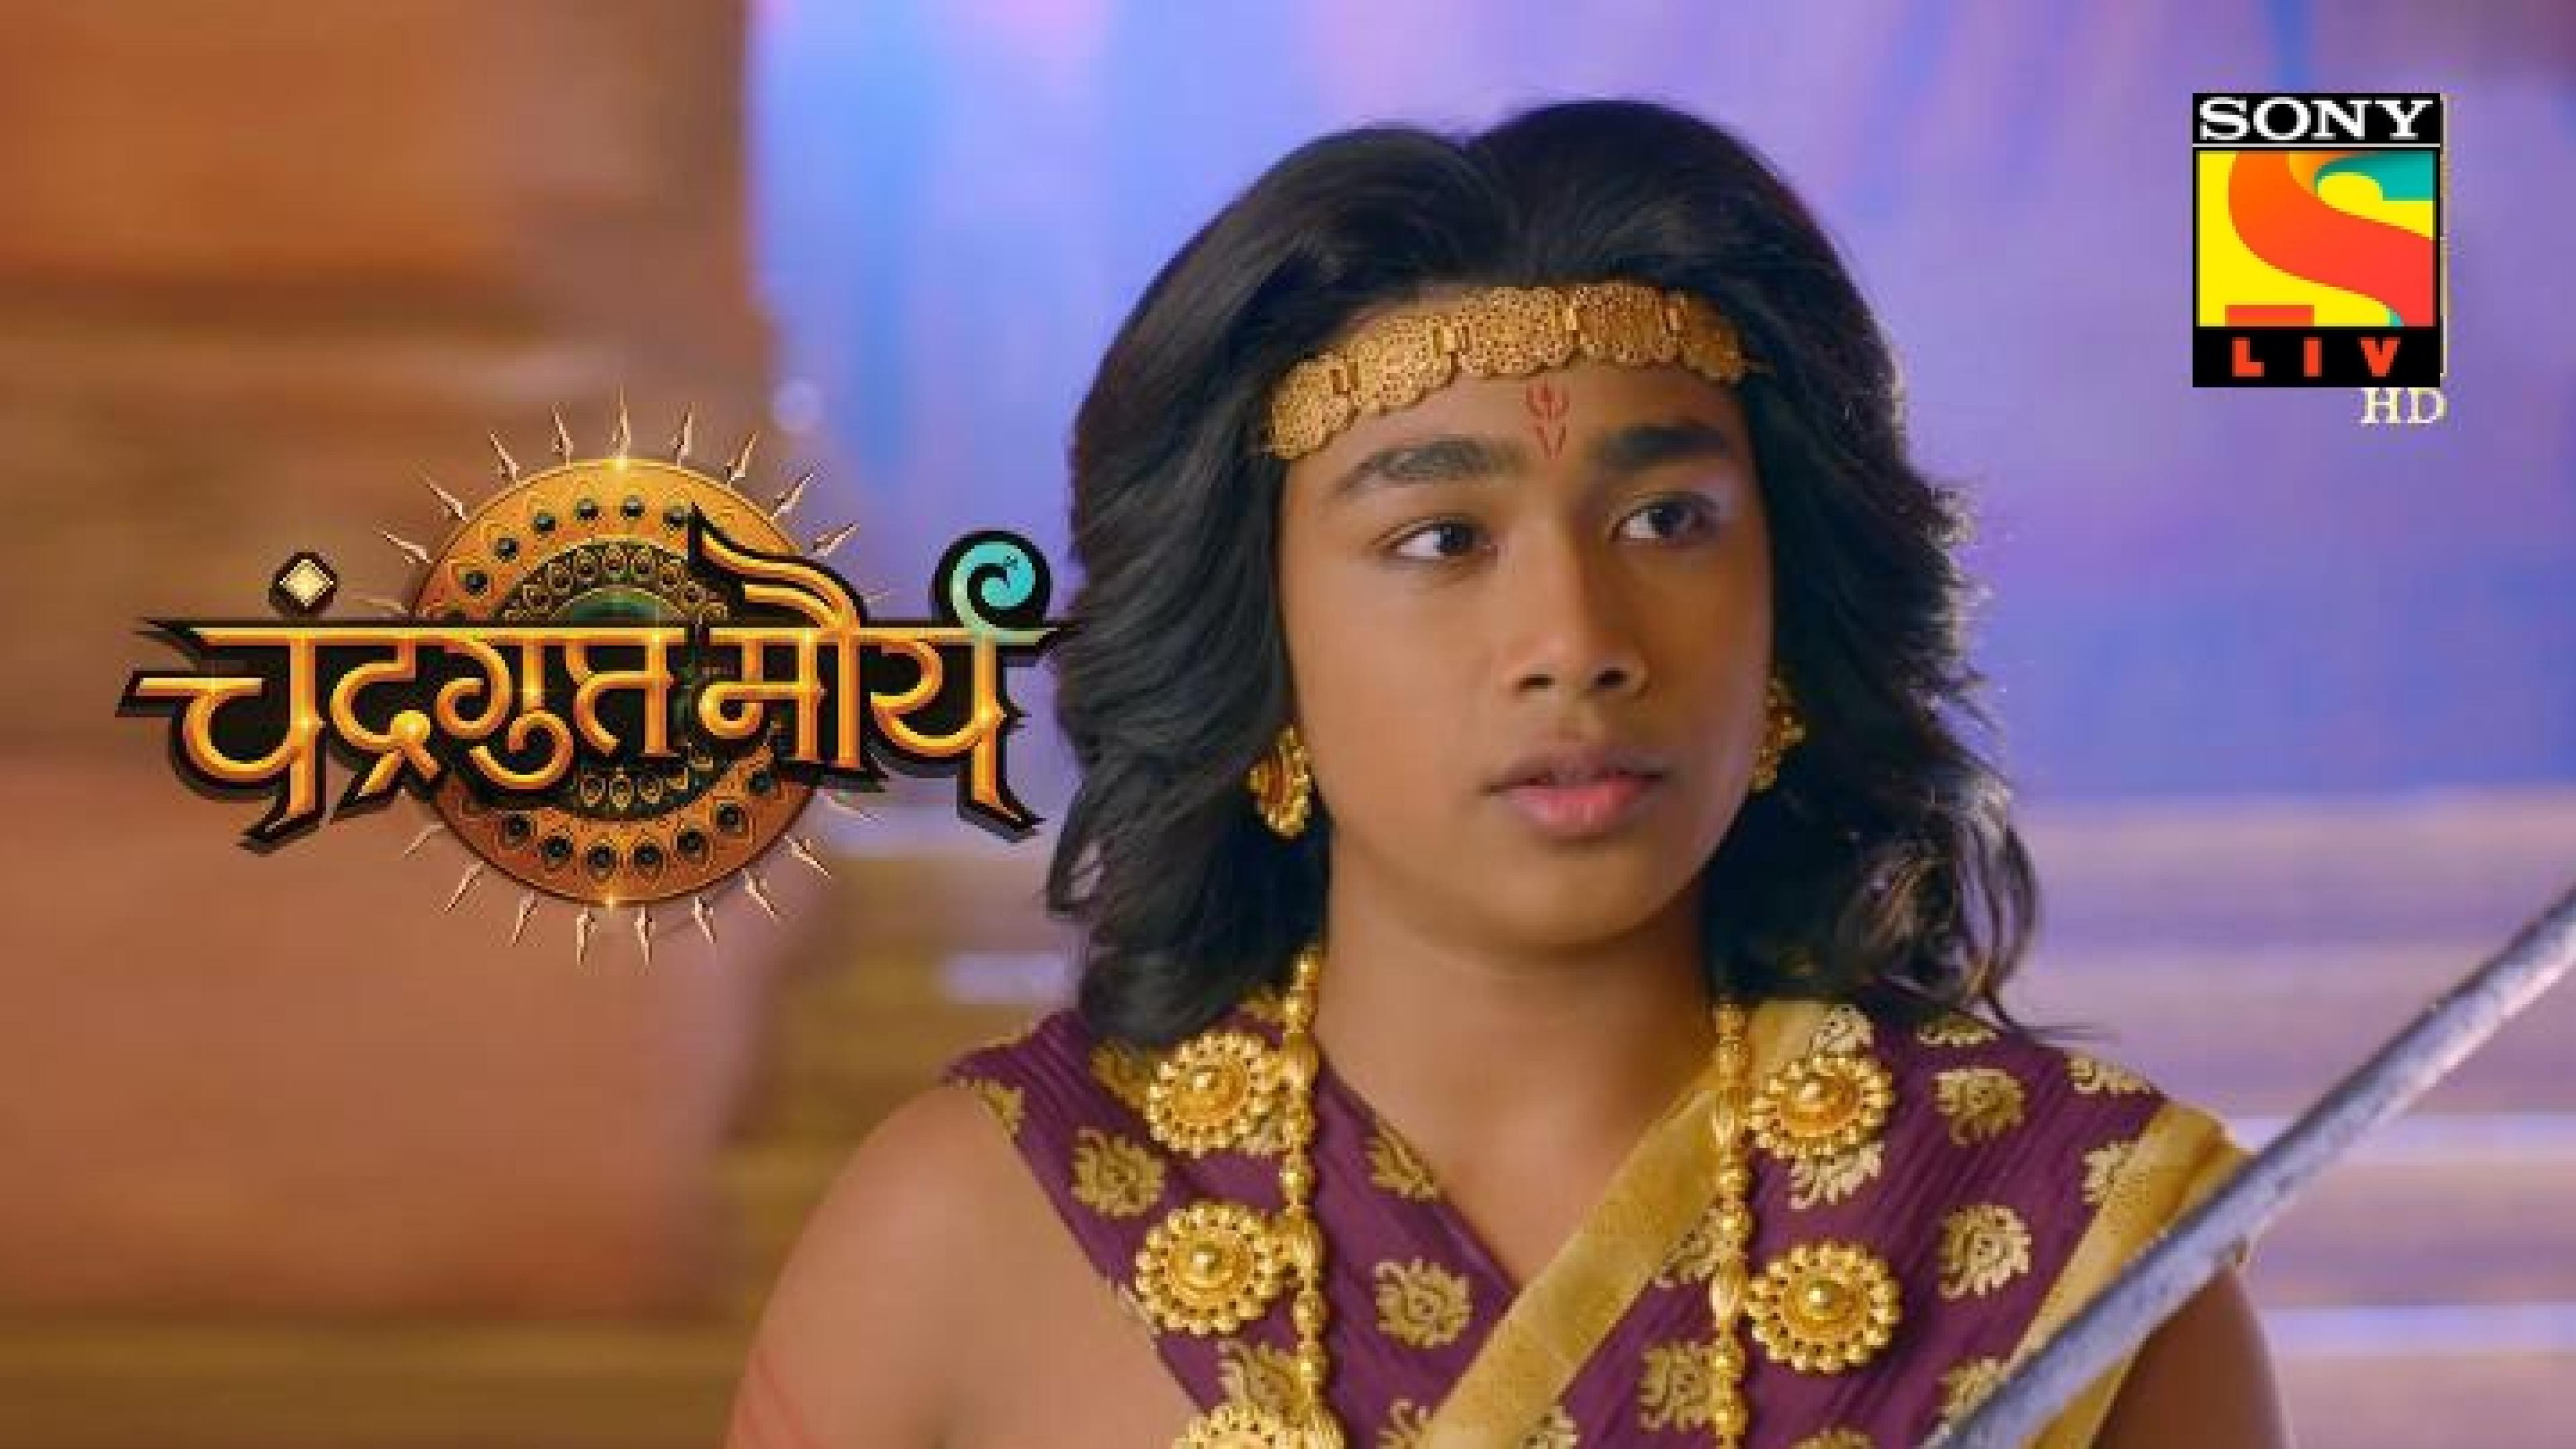 Chandragupta maurya serial episode 1